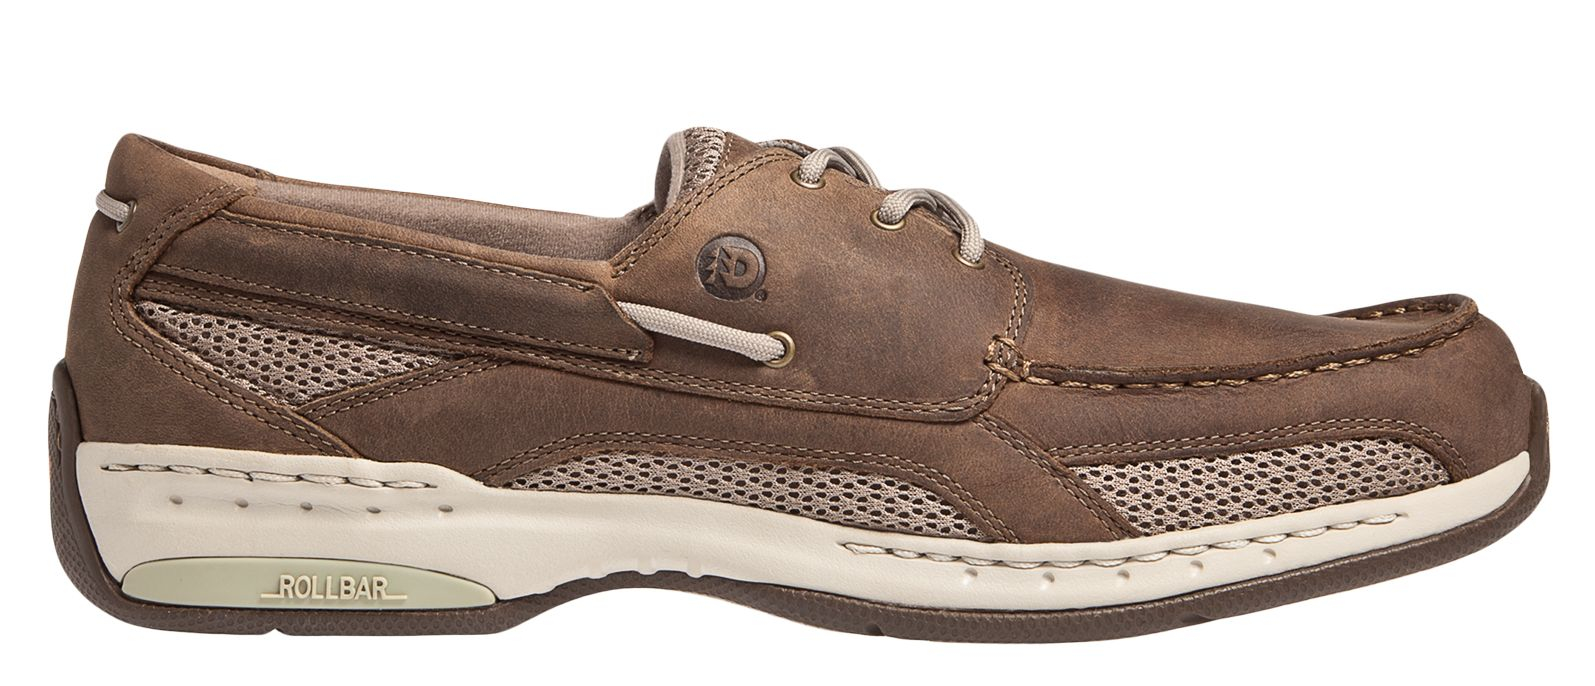 Are New Balance Medicare Approved Shoes Slip Resistant